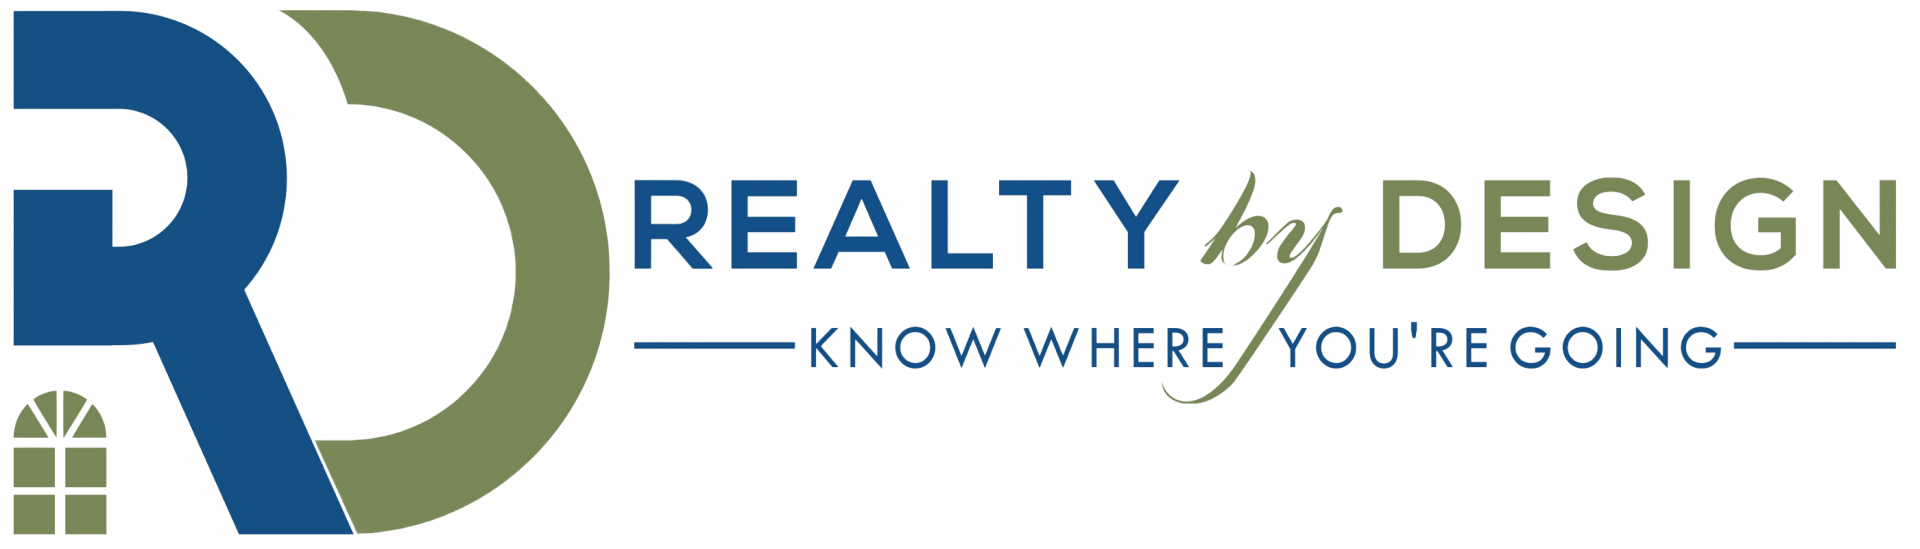 Realty By Design logo